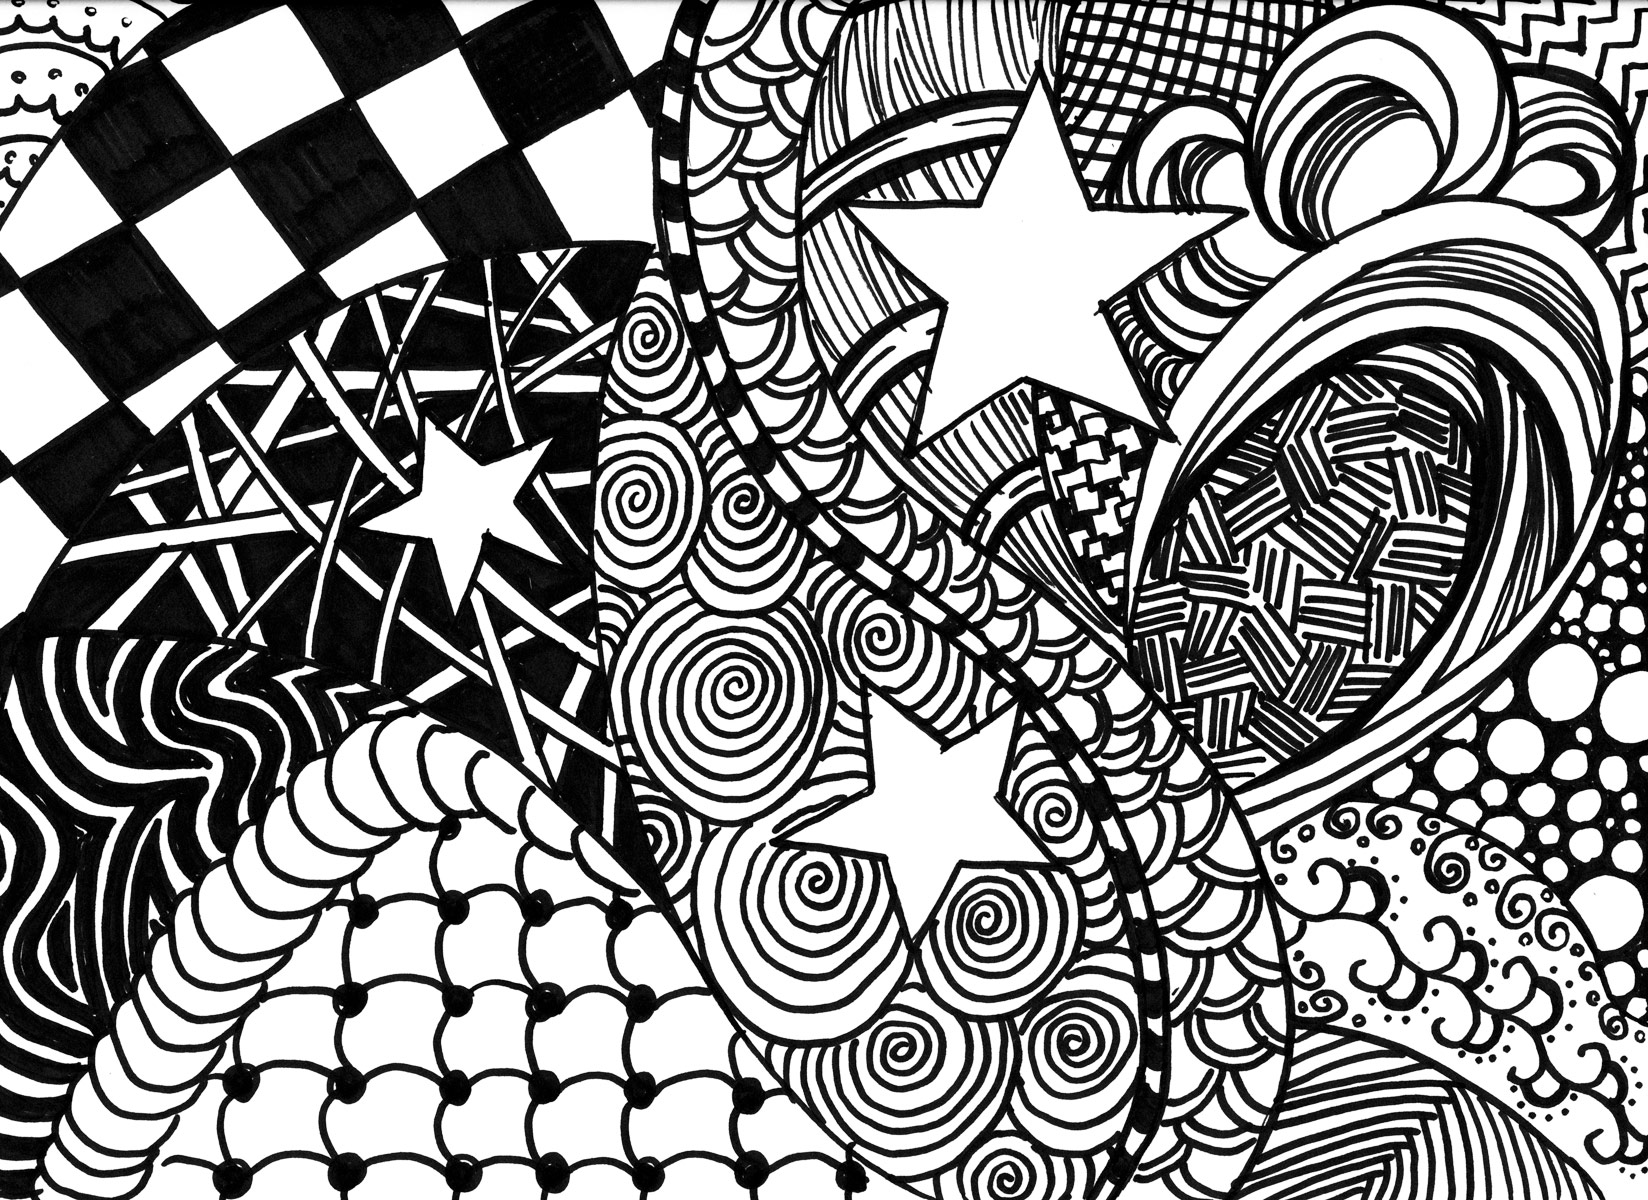 1648x1200 Zentangle Coping With Cancer Through Doodle Art